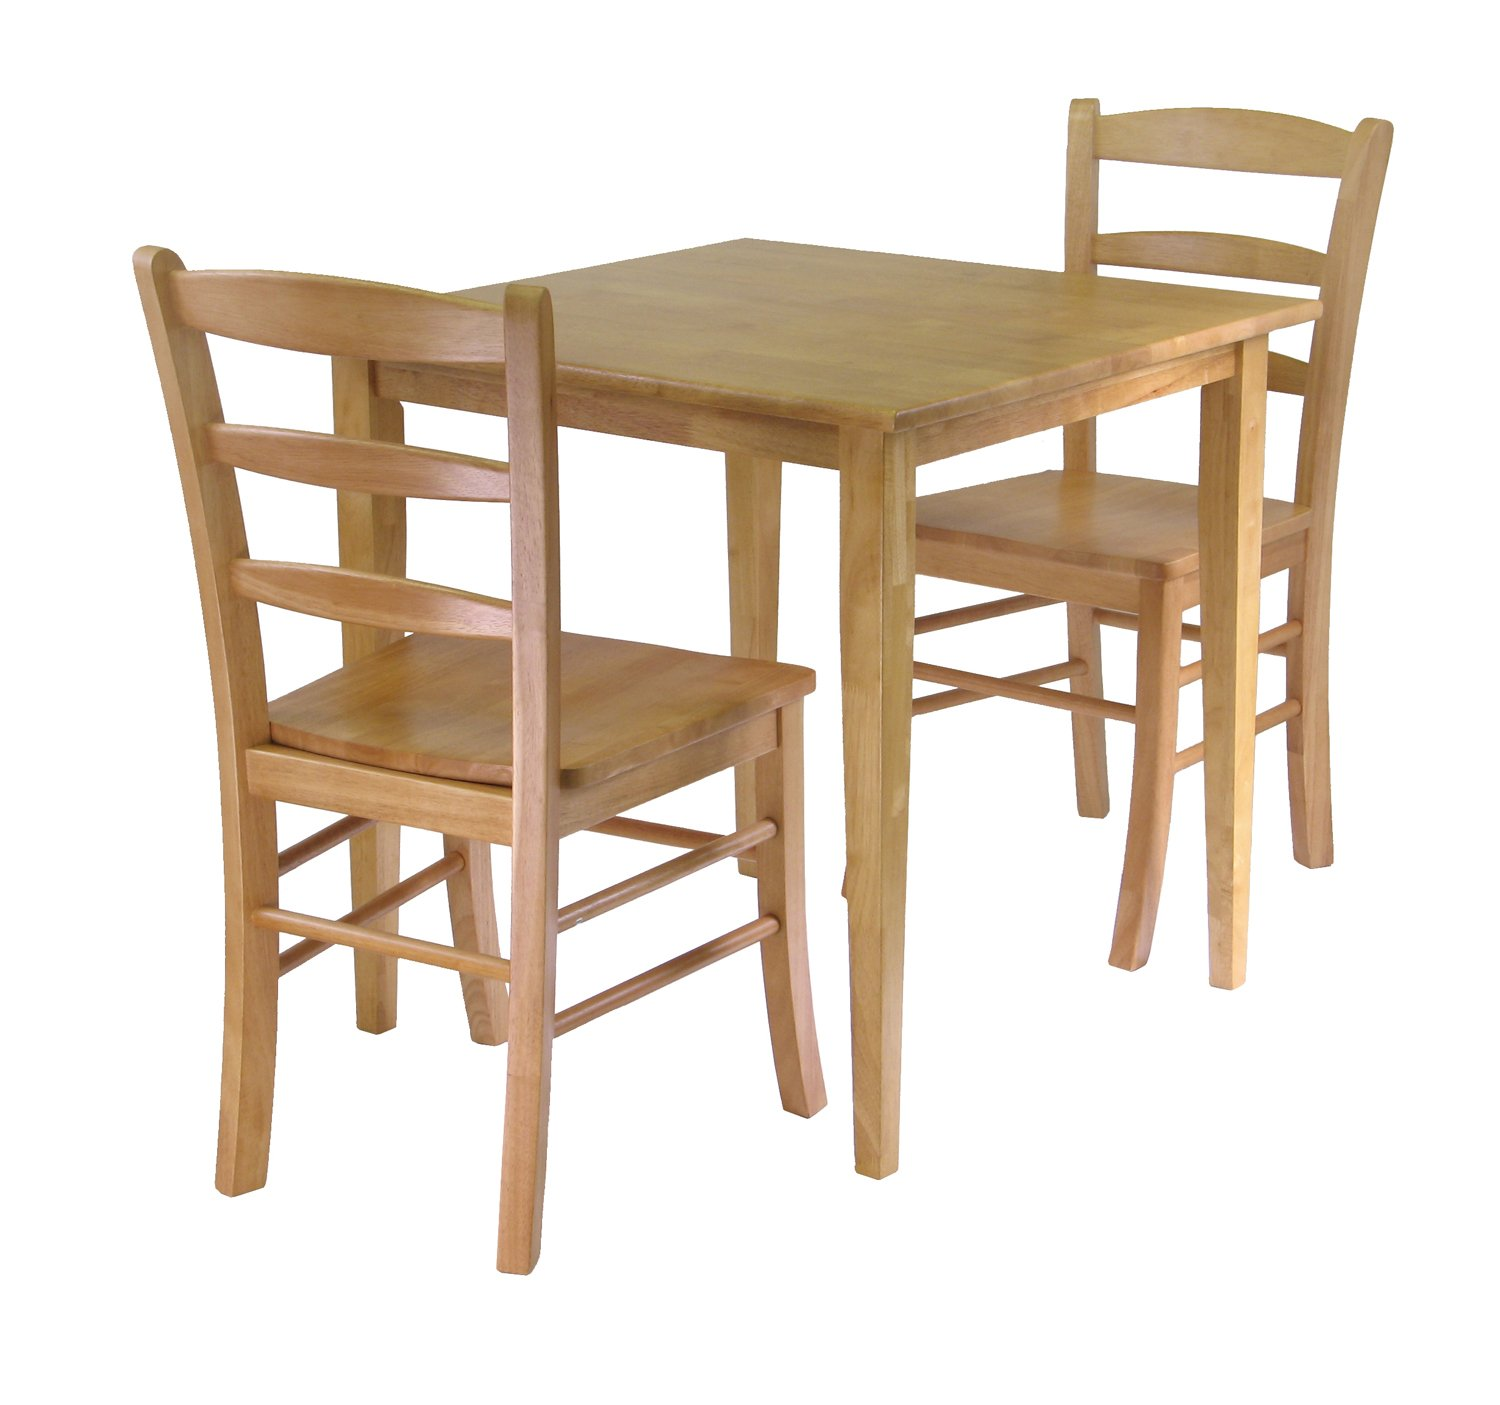 Small kitchen table sets for Compact kitchen table set